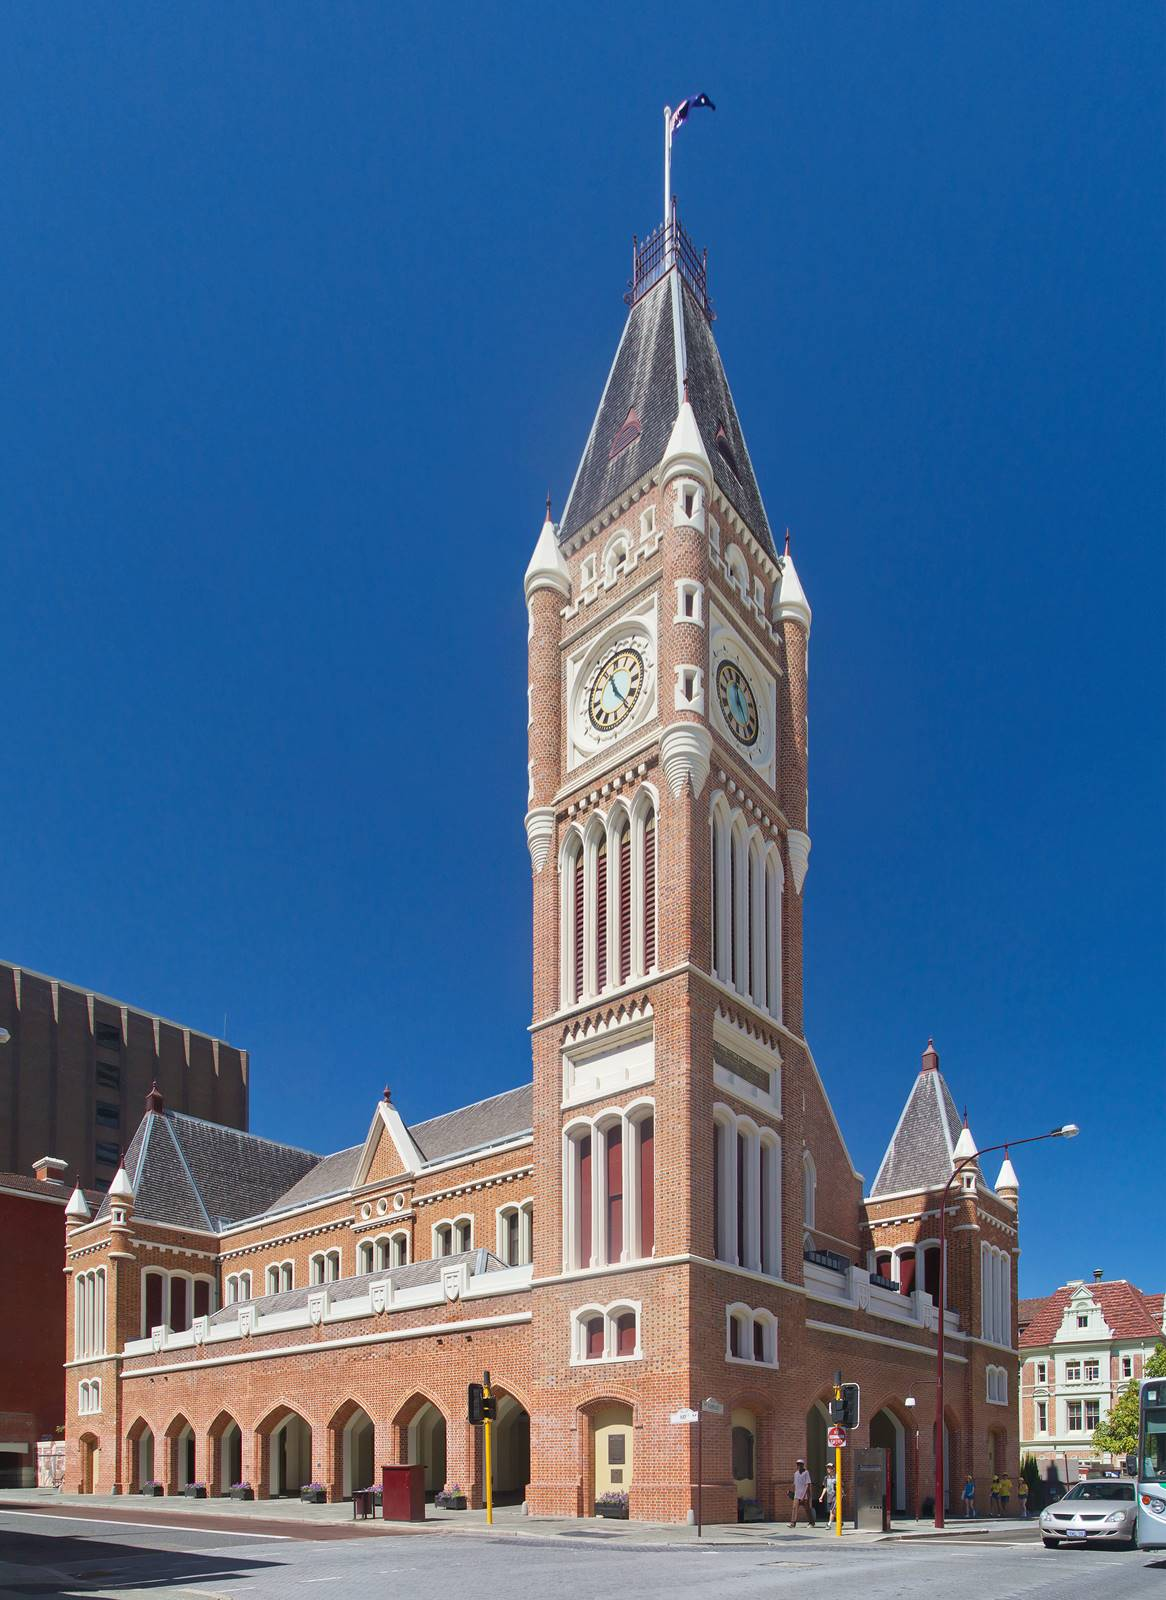 伯斯-市區-景點-推薦-伯斯市政廳-Perth Town Hall-自由行-旅遊-必玩-必去-遊記-行程-Perth-Best-Tourist-Travel-Attraction